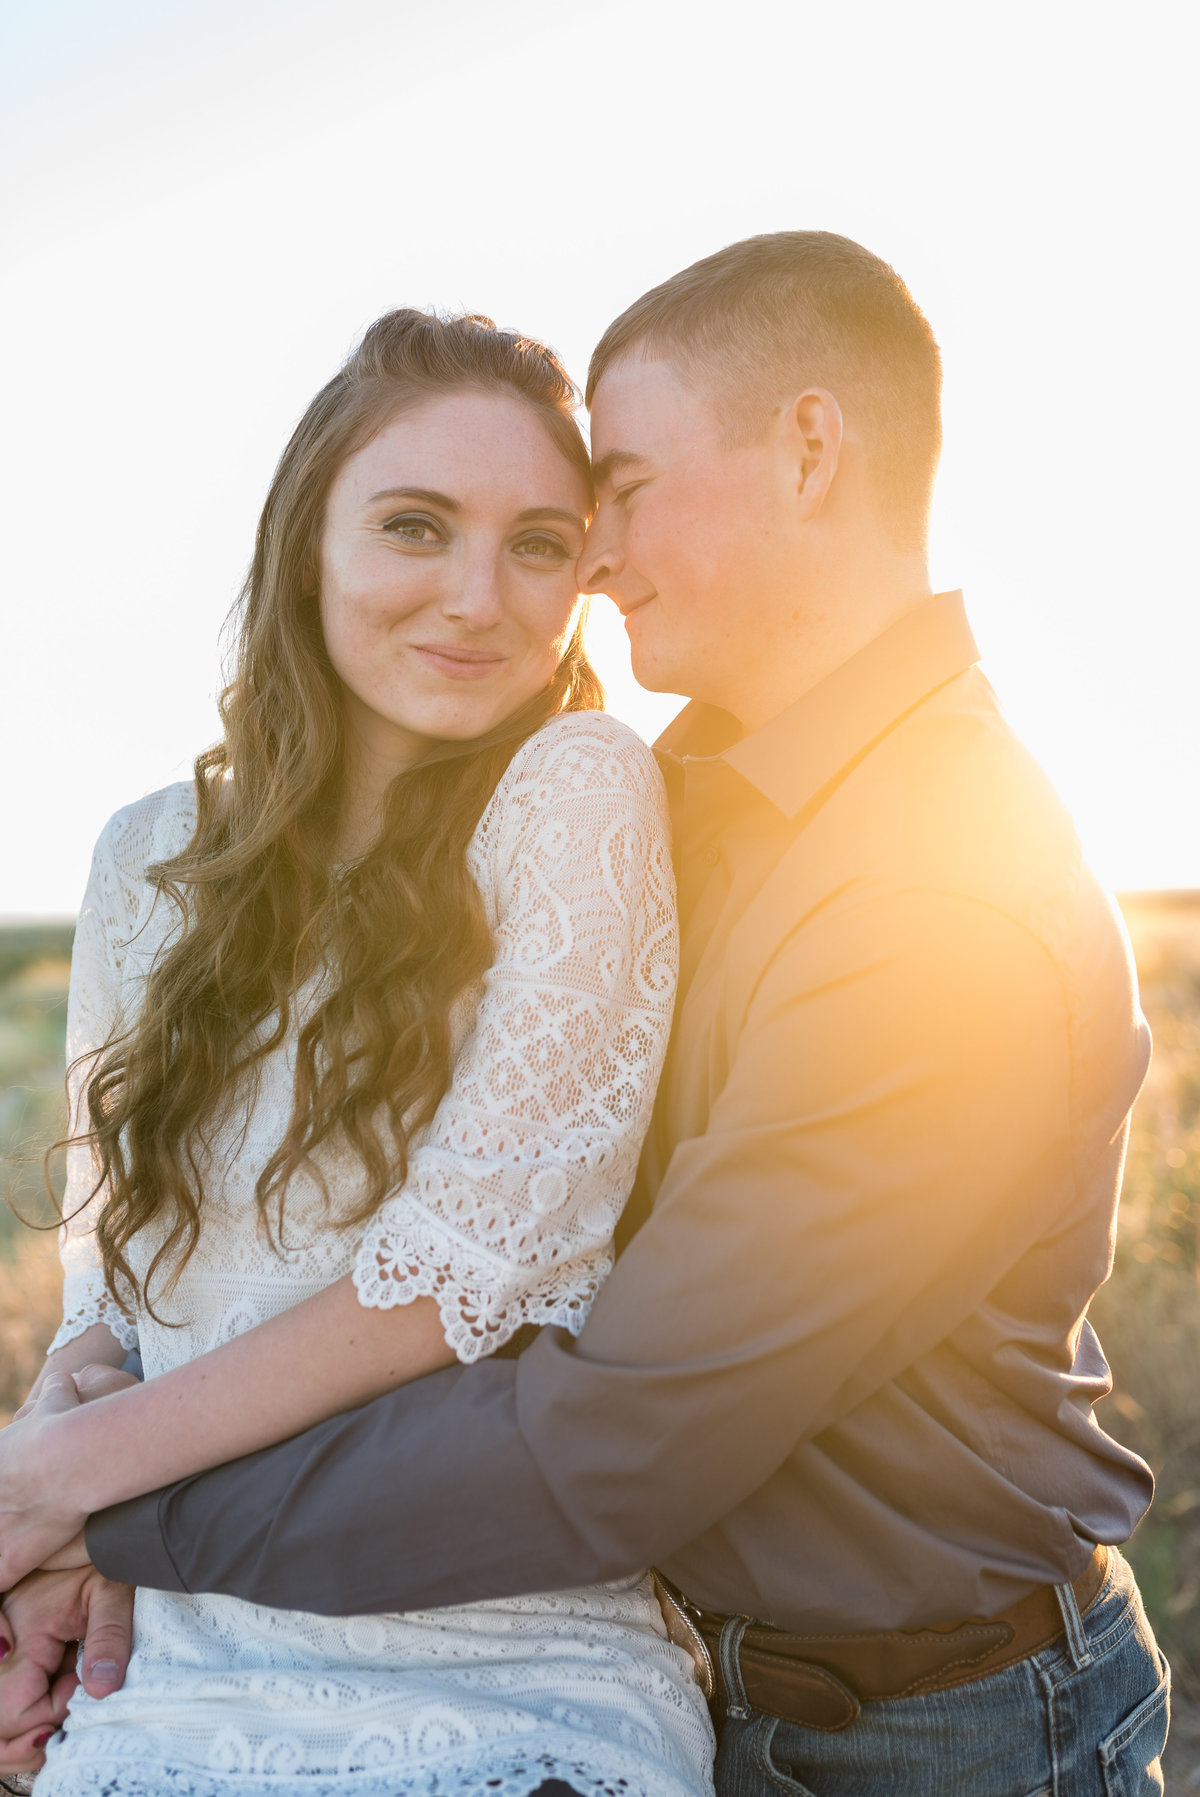 Spring Boise Foothills Engagement Shoot13